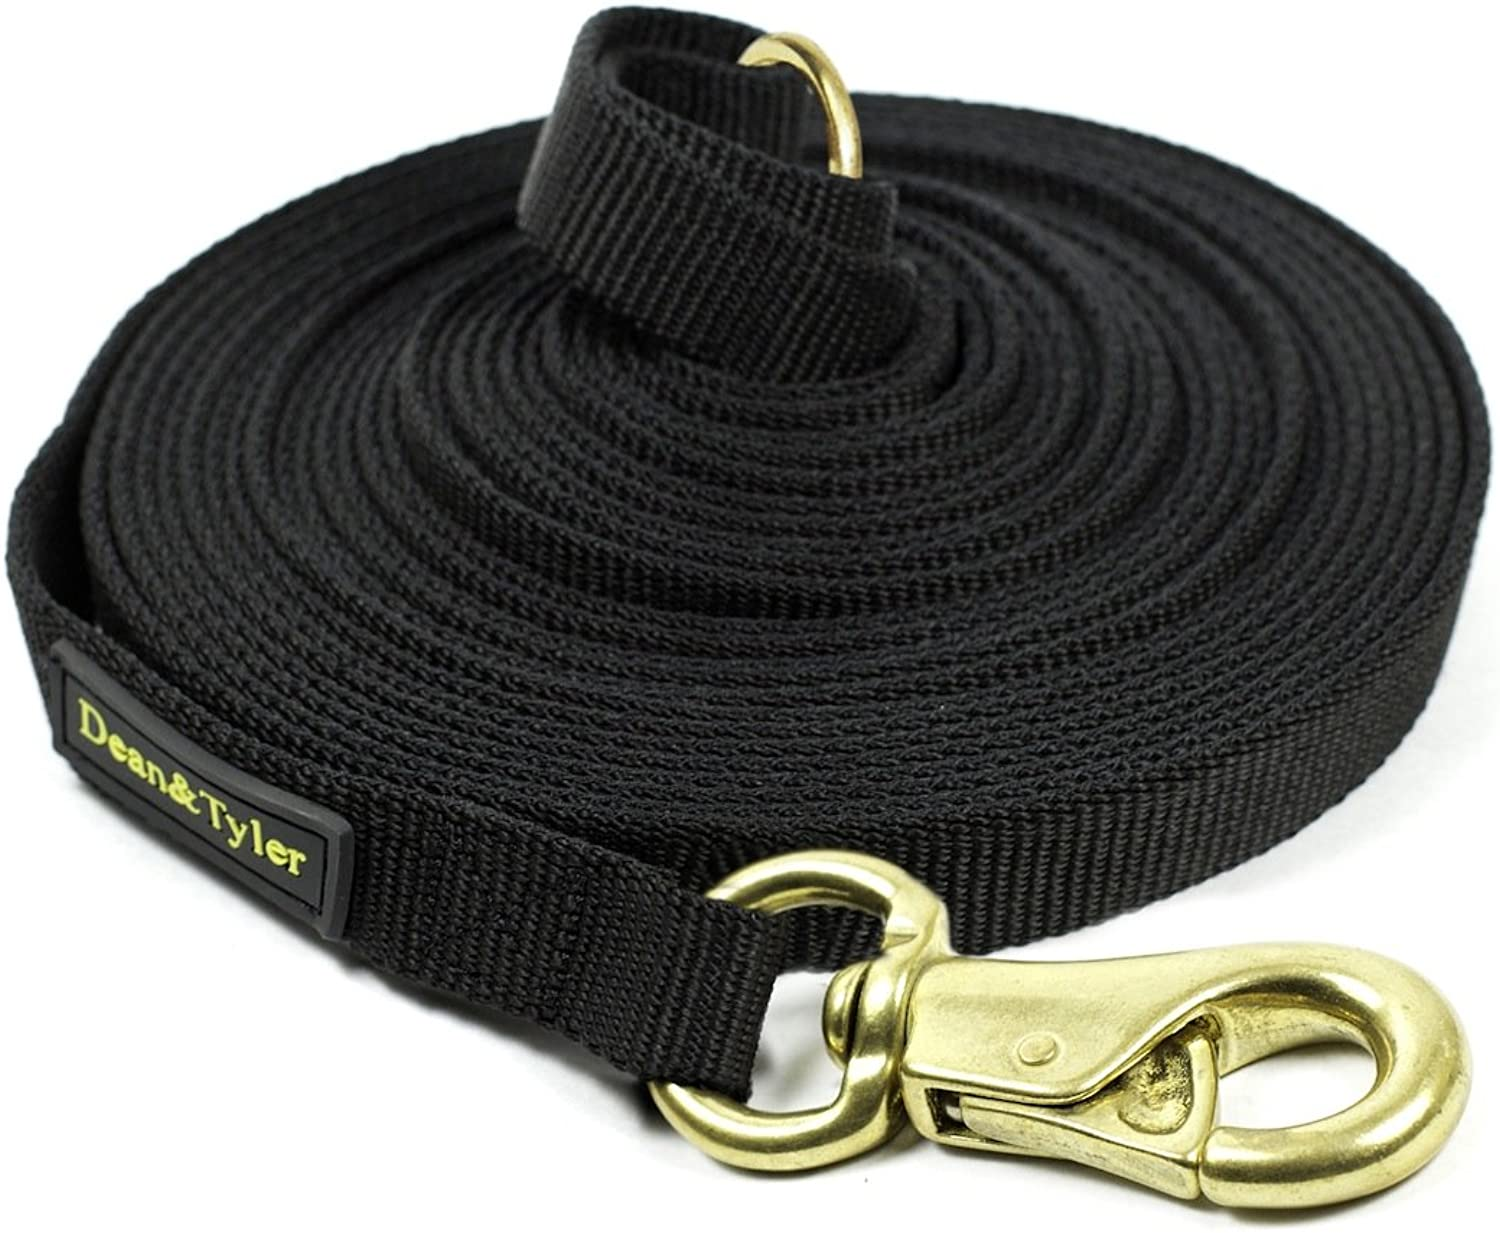 Dean & Tyler Nylon Track Double Ply Dog Leash with a Ring on Handle and Extra Strength Brass Snap Hook, 13Feet by 3 4Inch, Black